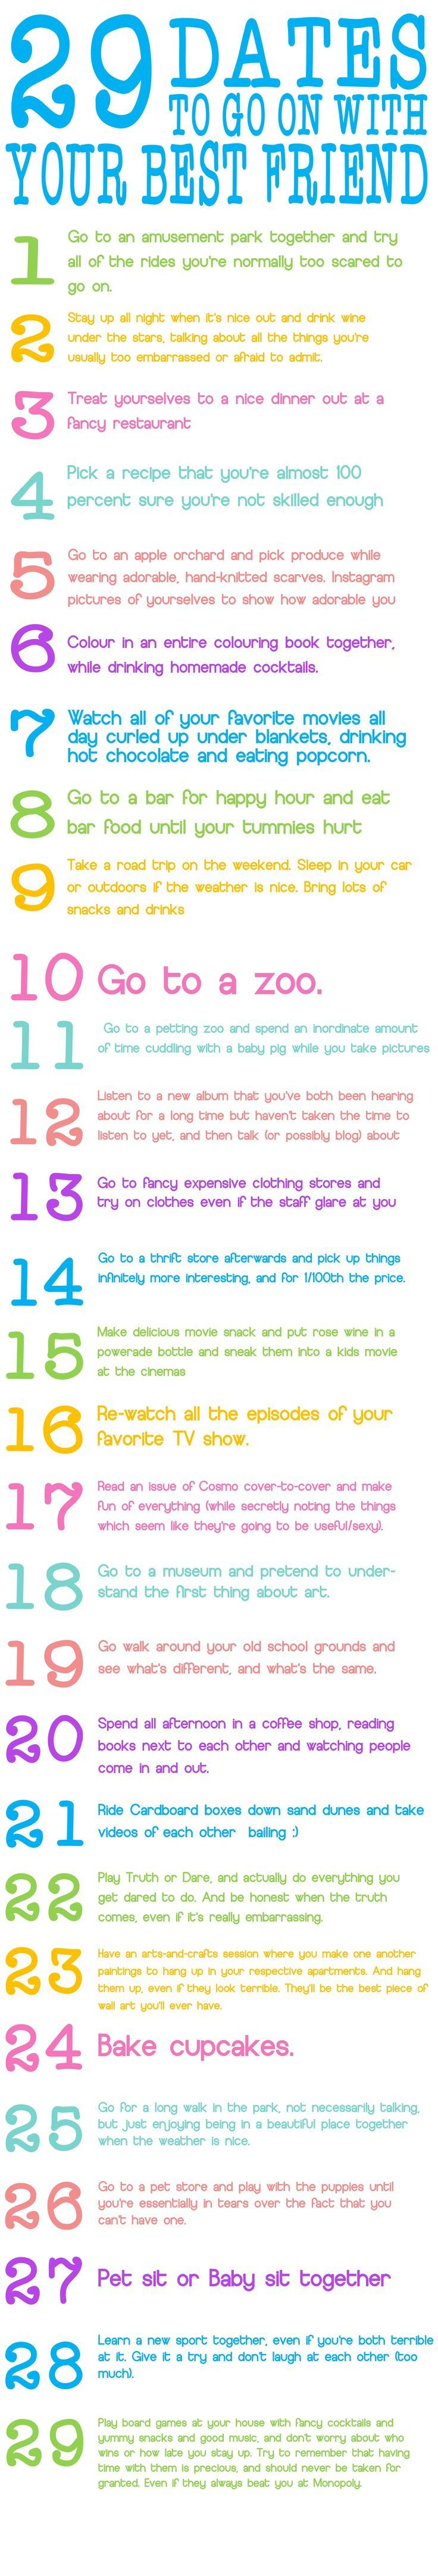 29 dates with your best friend HEY CATHERINE THIS IS FOR US!!! (Best Friend)